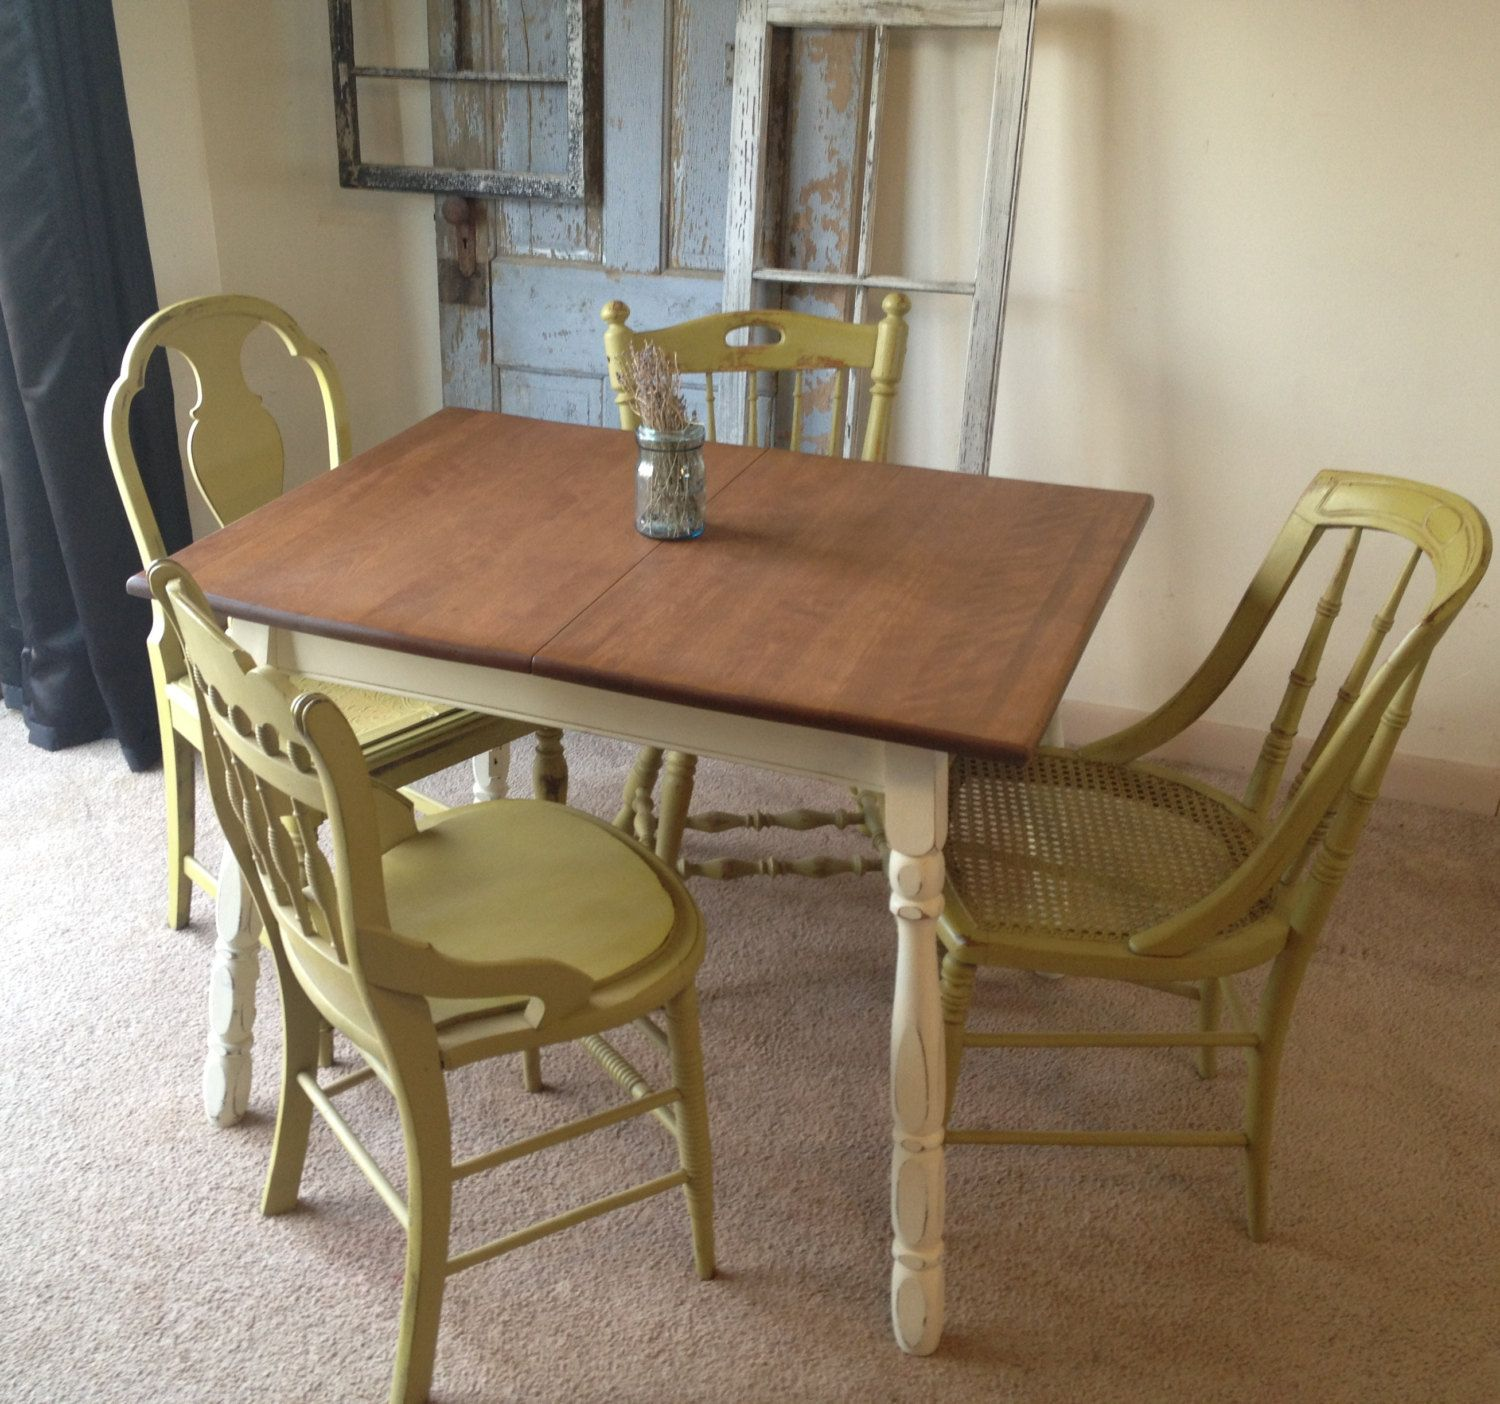 Small Country Kitchen Tables Vintage french provincialcountry kitchen table with four miss vintage french provincialcountry kitchen table with four miss matched chairs https workwithnaturefo